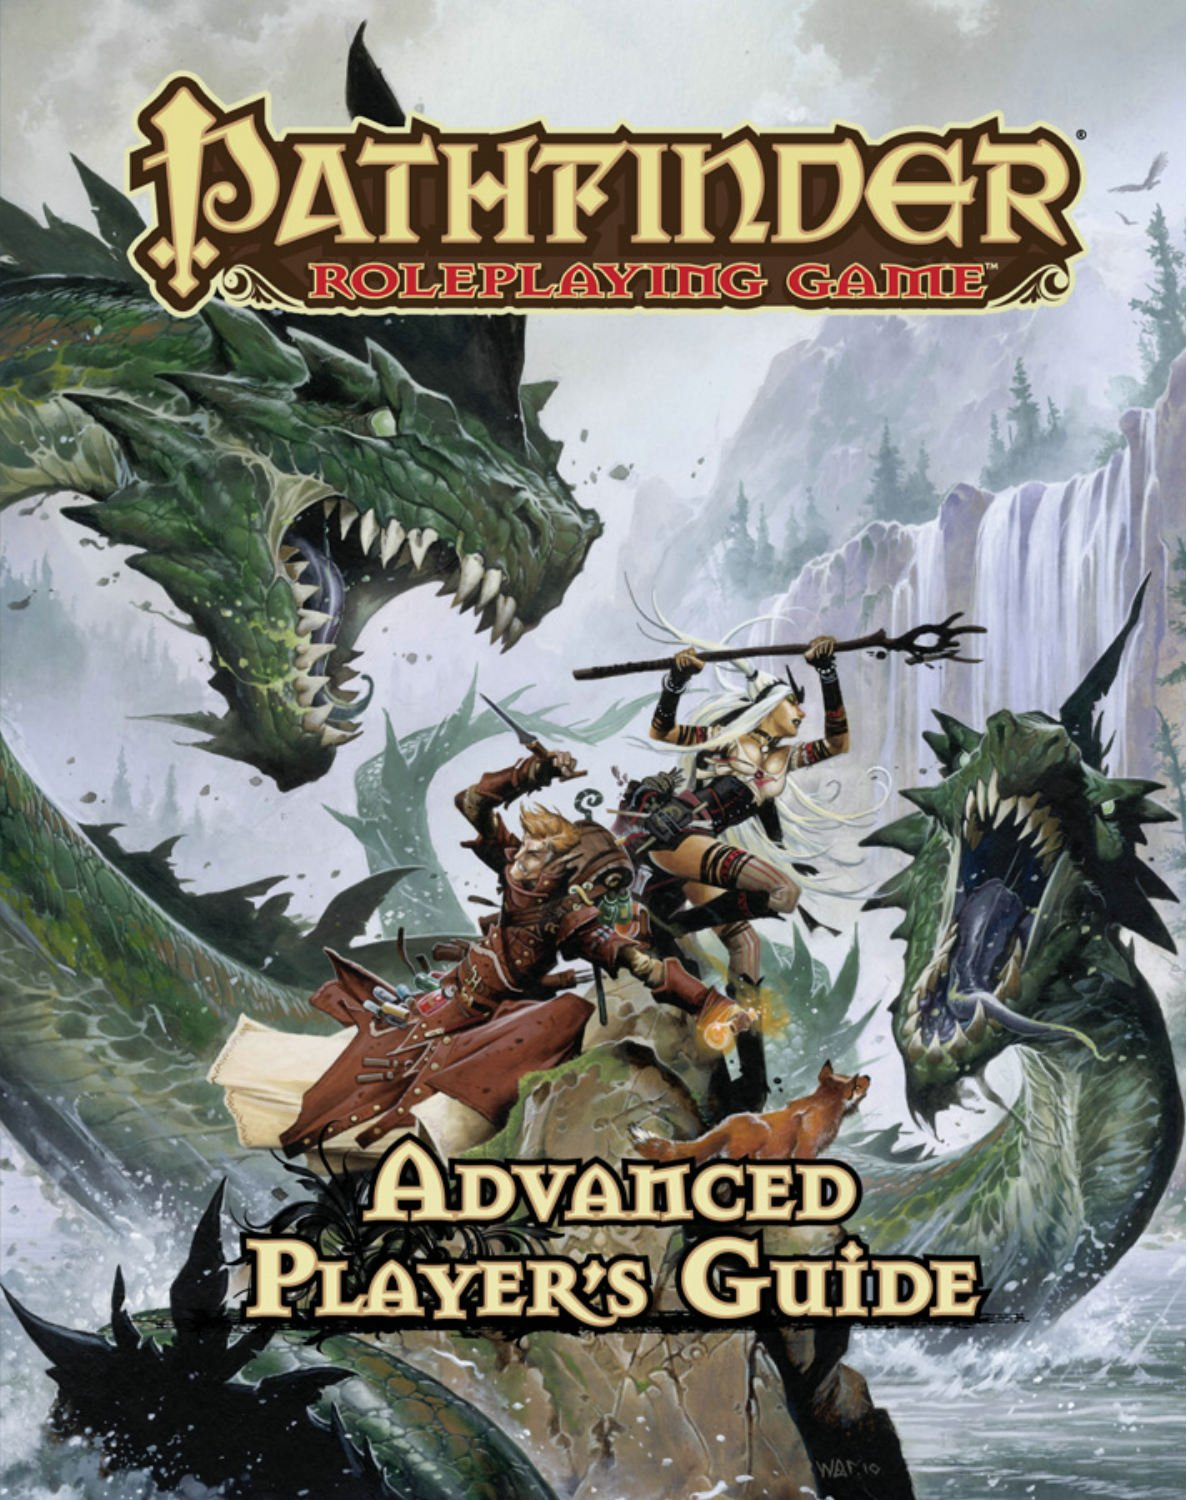 Pathfinder – Advanced Player's Guide – Strange Assembly